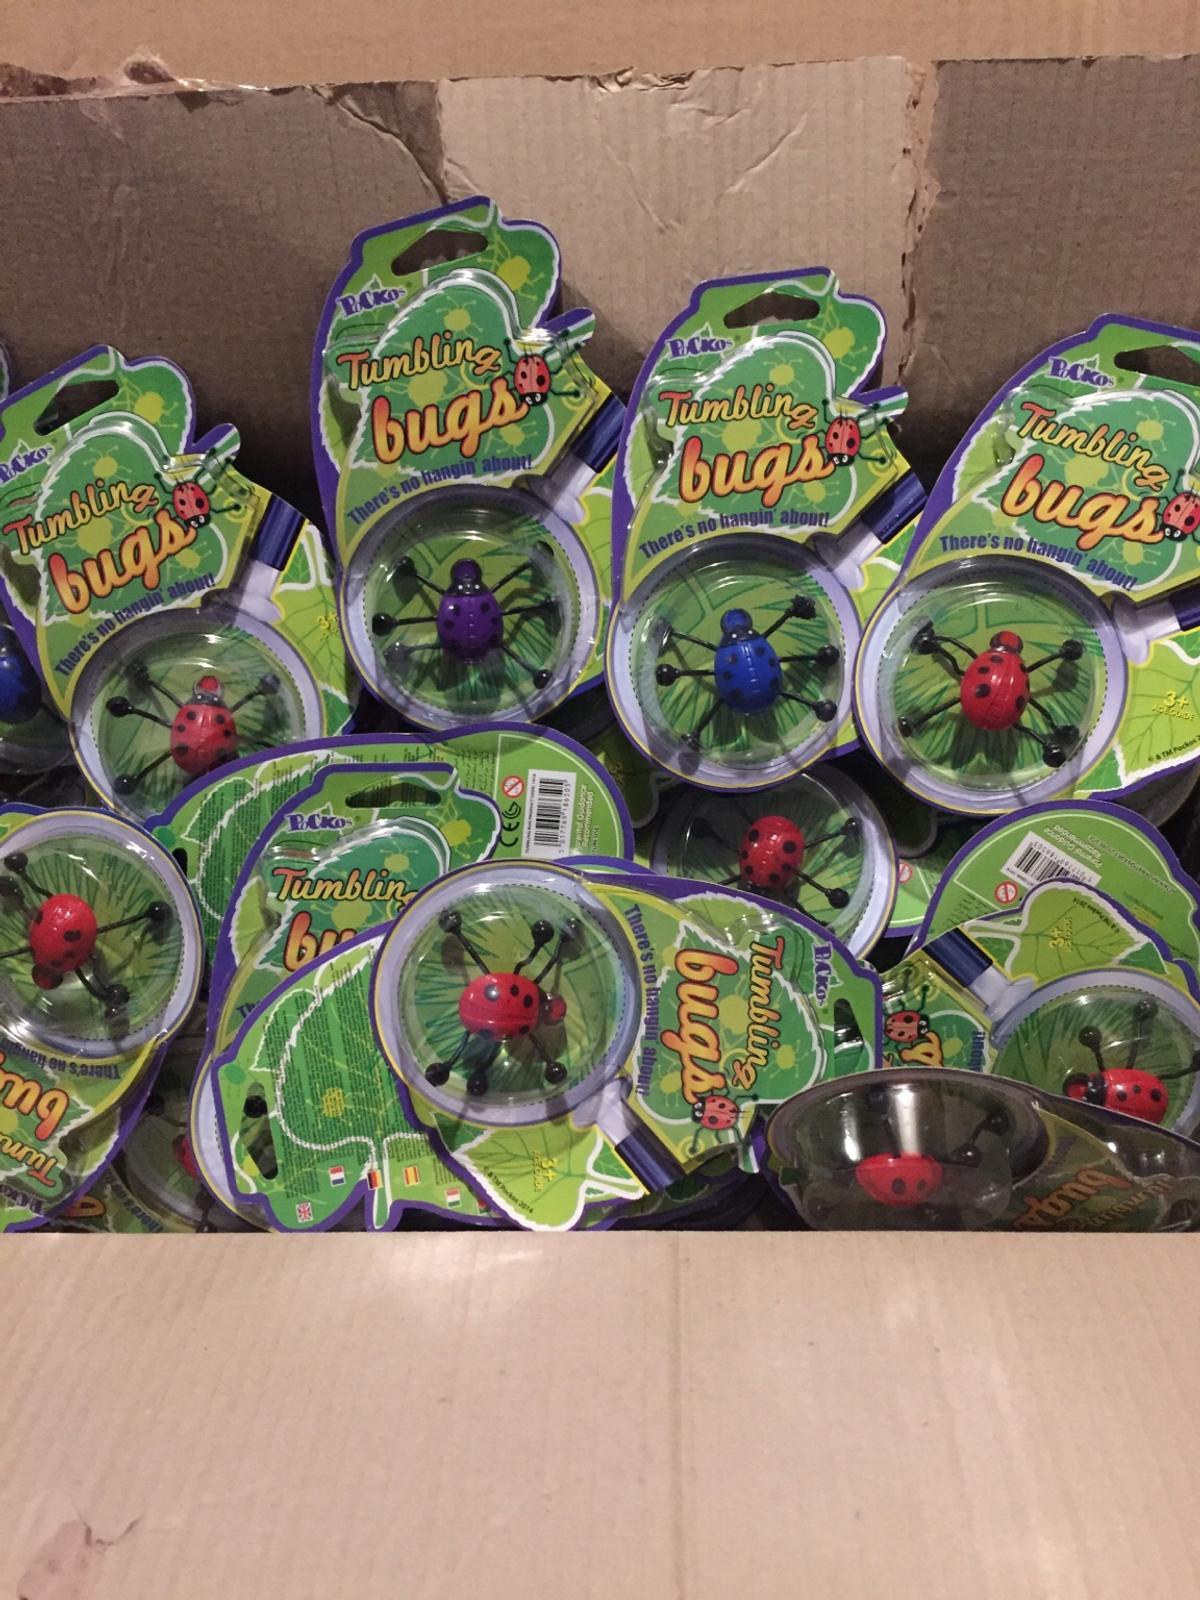 Tumbling bugs there's no hangin about we have red, blue, or purple £1 each or 2 for £1:50